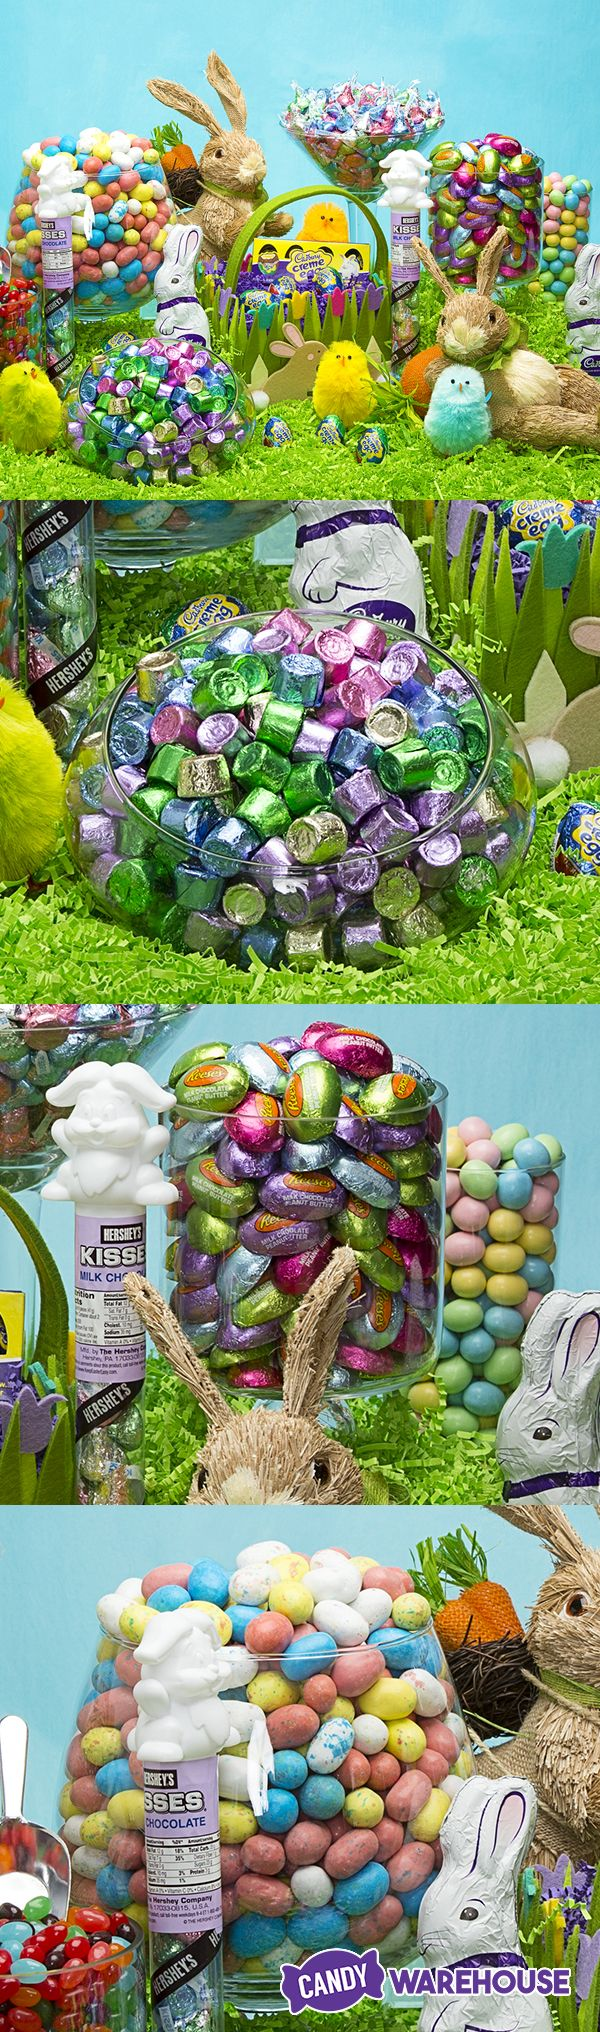 Don't just go with the same generic grocery store candy this year. Fill your Easter baskets with colorful brand-name favorites like spring color Rolos, Reese's peanut butter eggs, and Whopper speckled eggs! See even more Hershey's Easter candy at http://www.candywarehouse.com/landing-pages/hersheys-easter-candy/